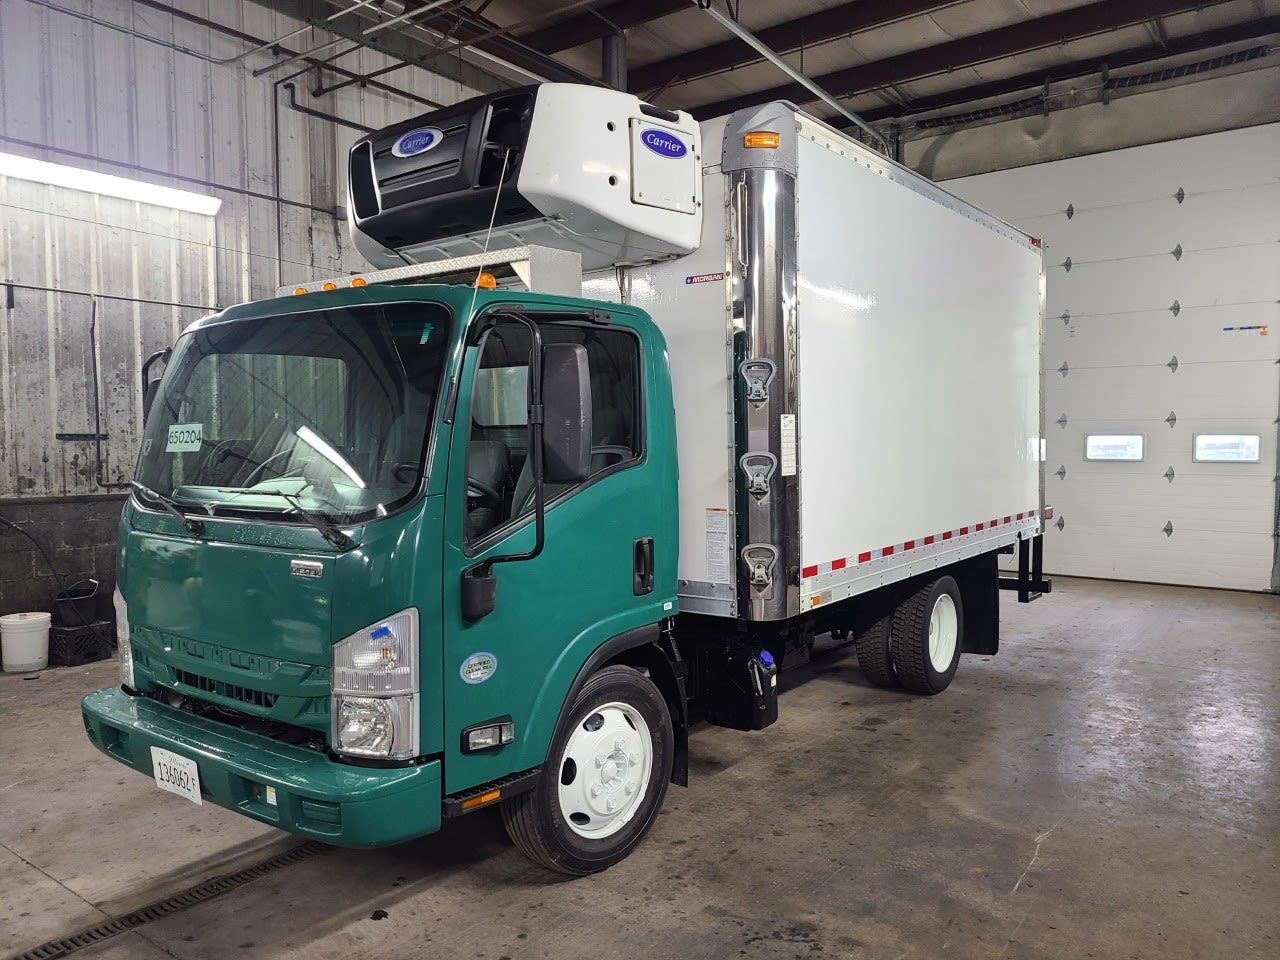 2016 Isuzu NPR-XD Regular Cab 4x2, Refrigerated Body #650204 - photo 1